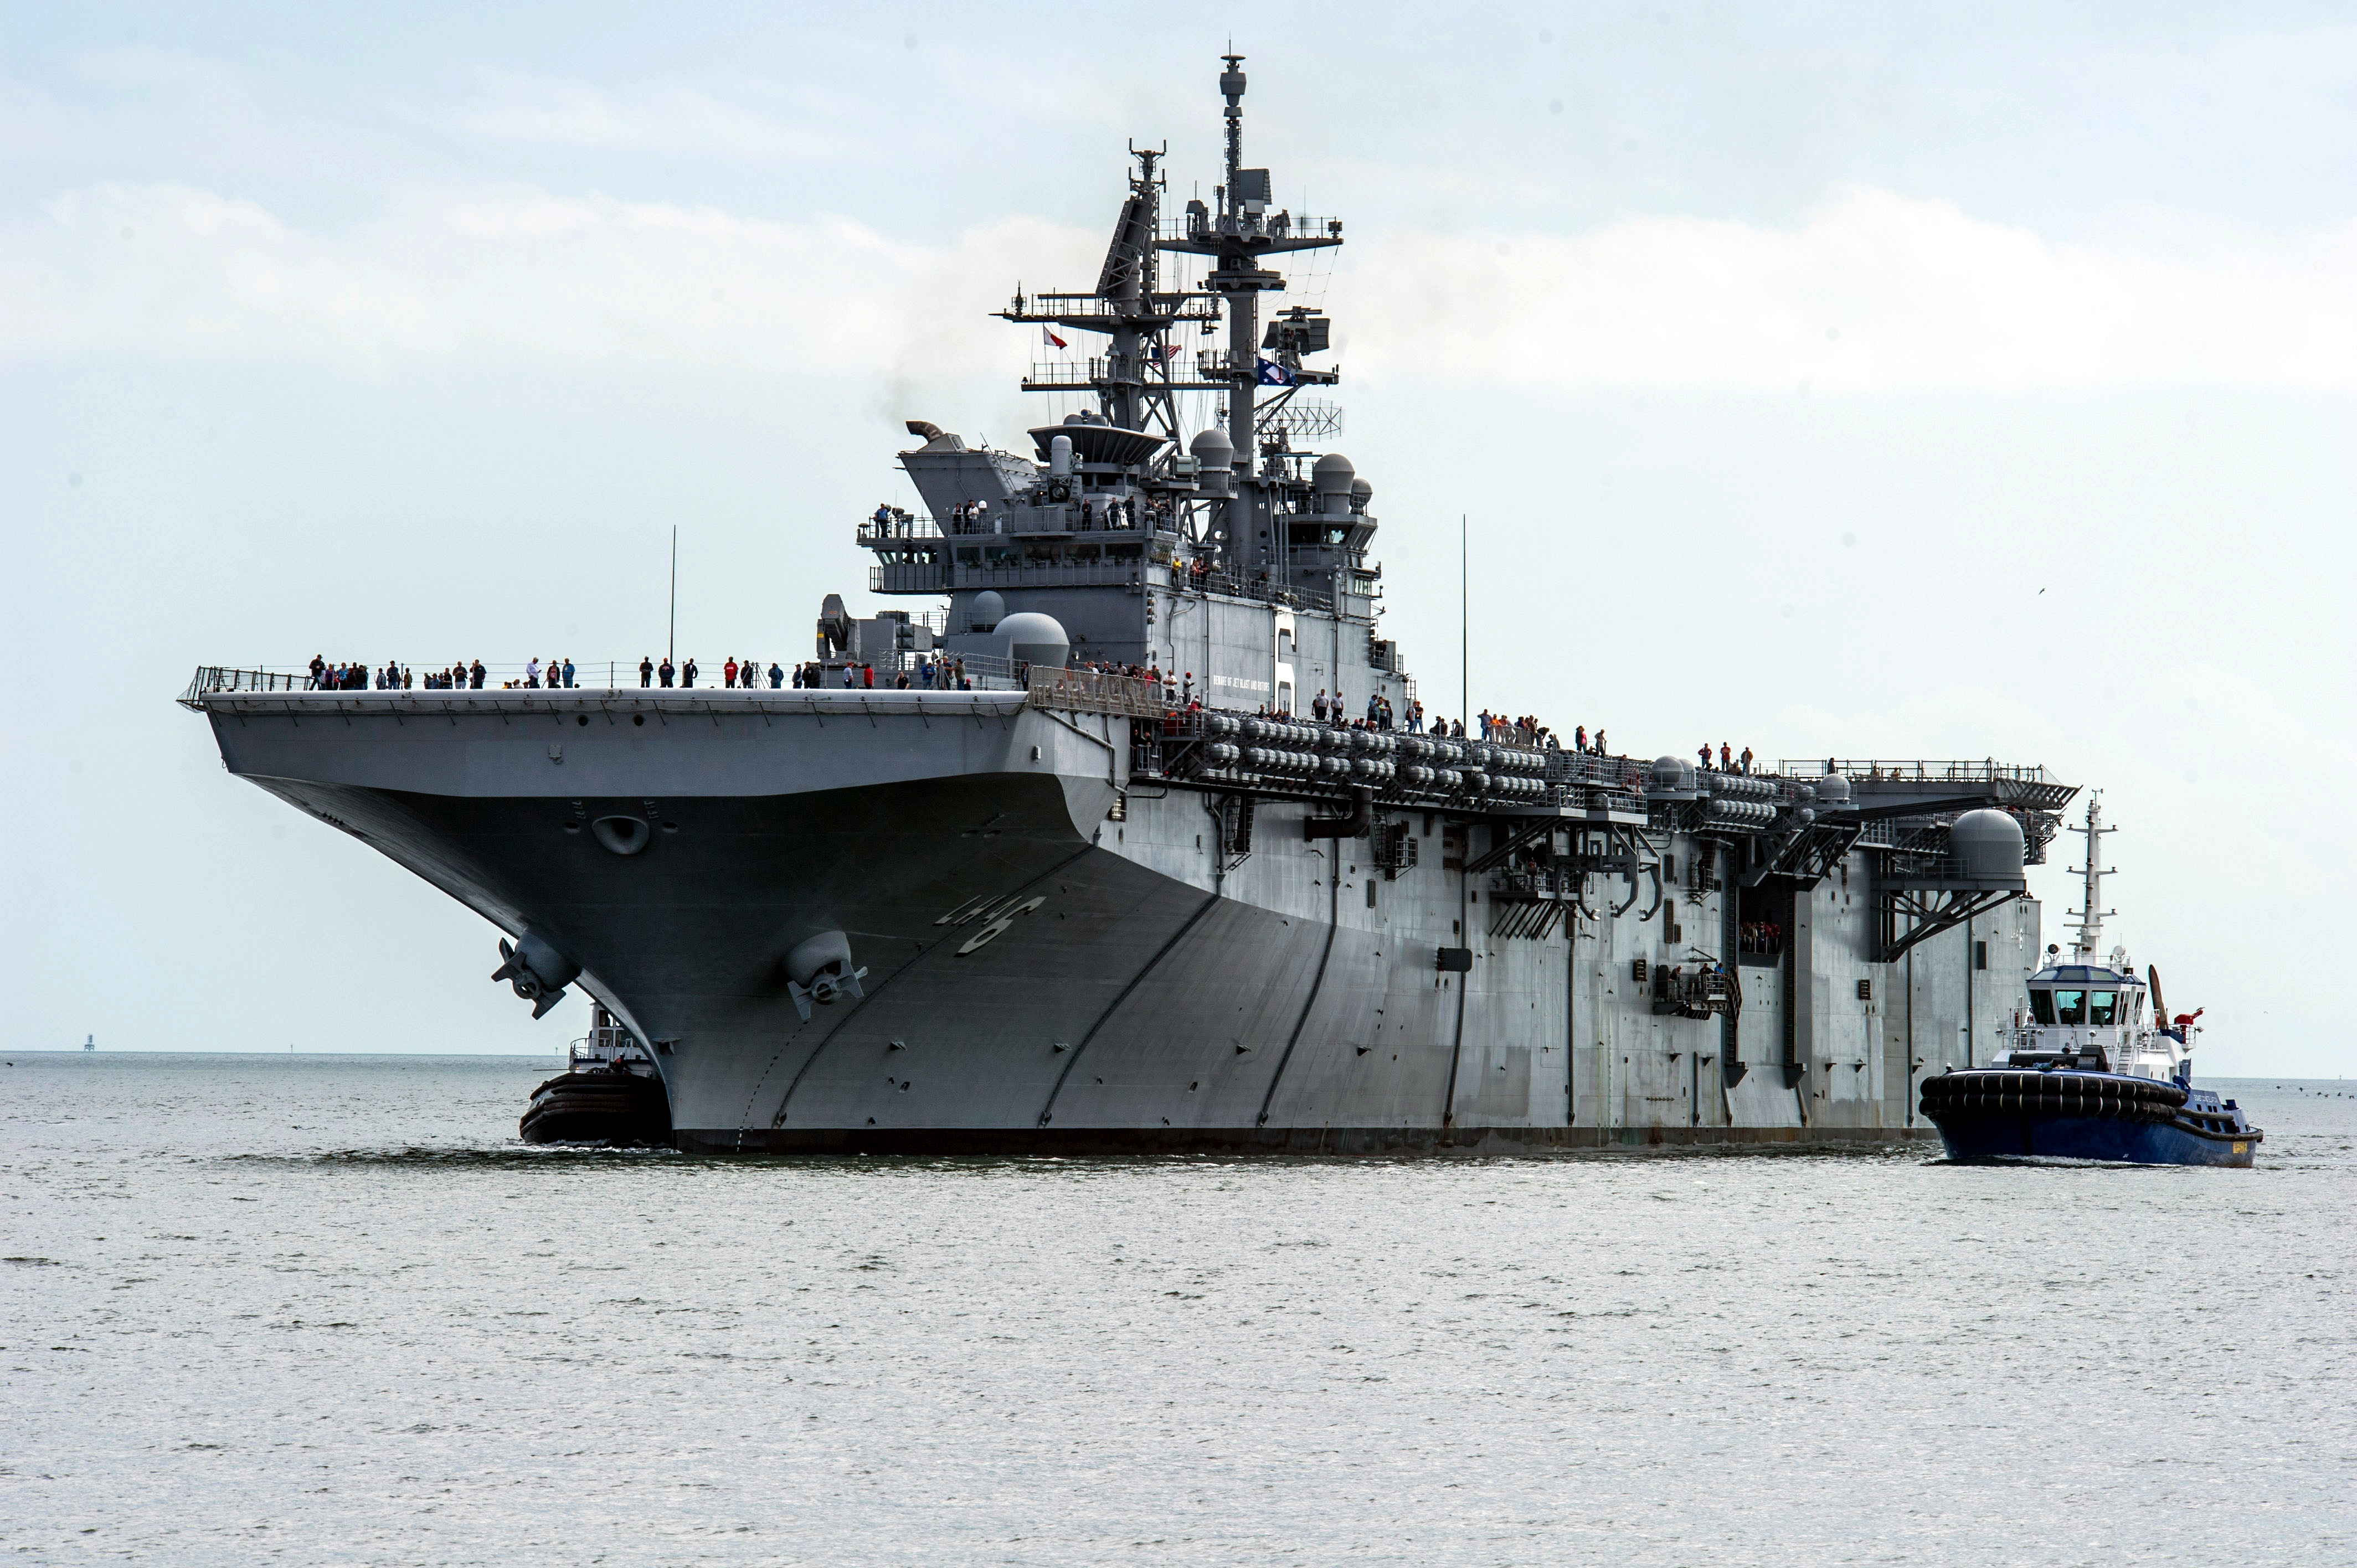 USS_America_(LHA-6)_off_Pascagoula_in_20